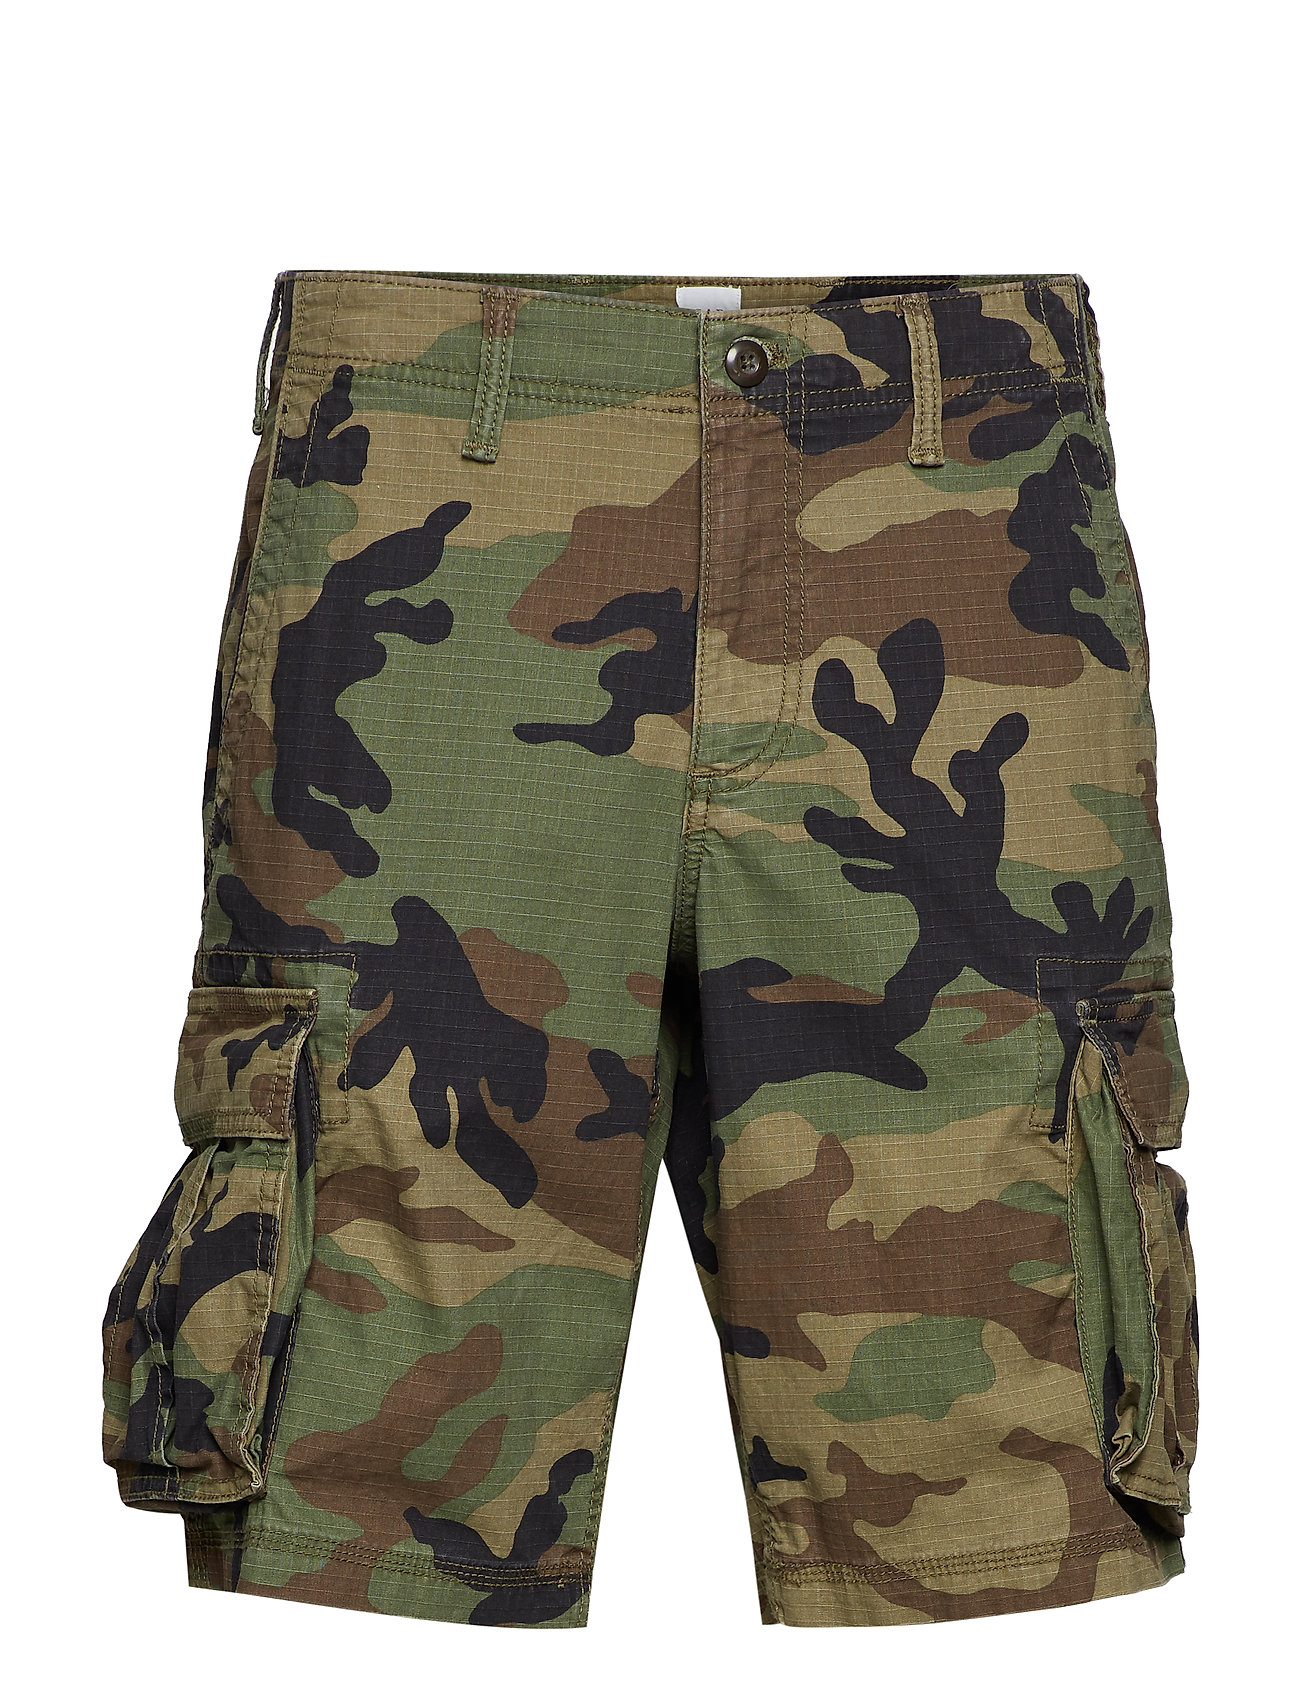 6545fb74e0 Cargo Short New (Camouflage) (£35) - GAP - | Boozt.com